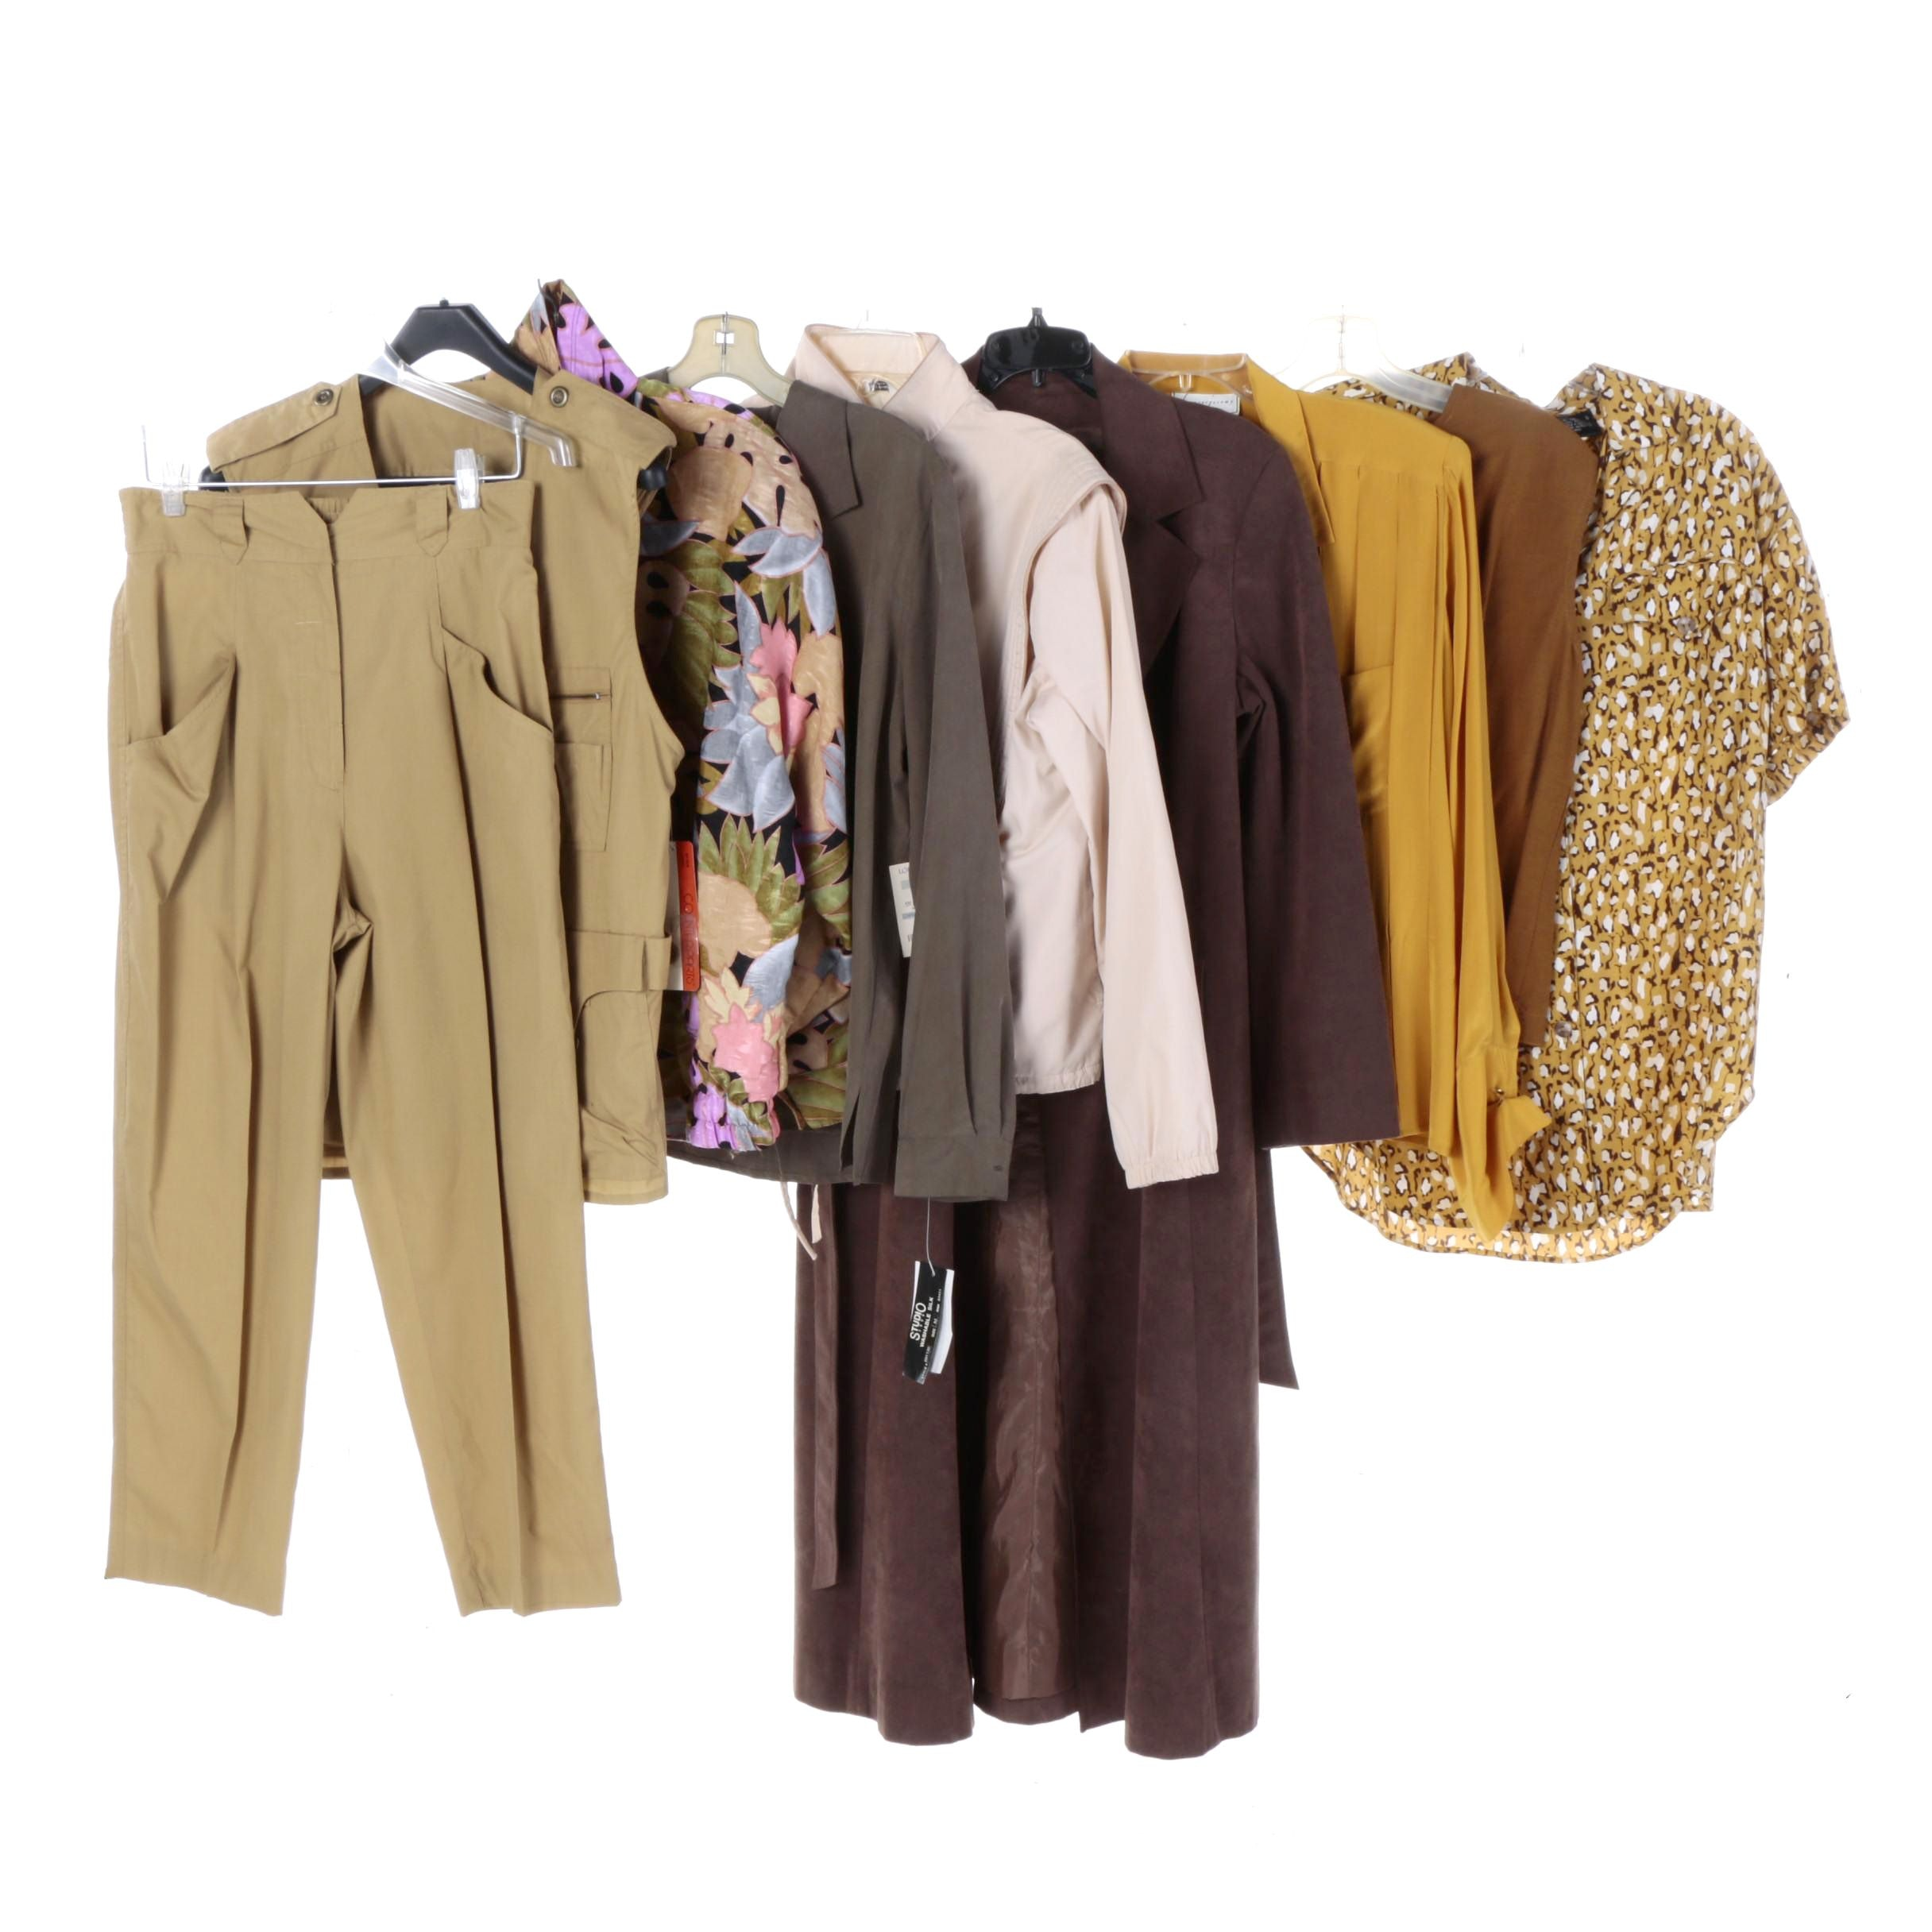 Women's Contemporary and Vintage Clothing Including Max Studio